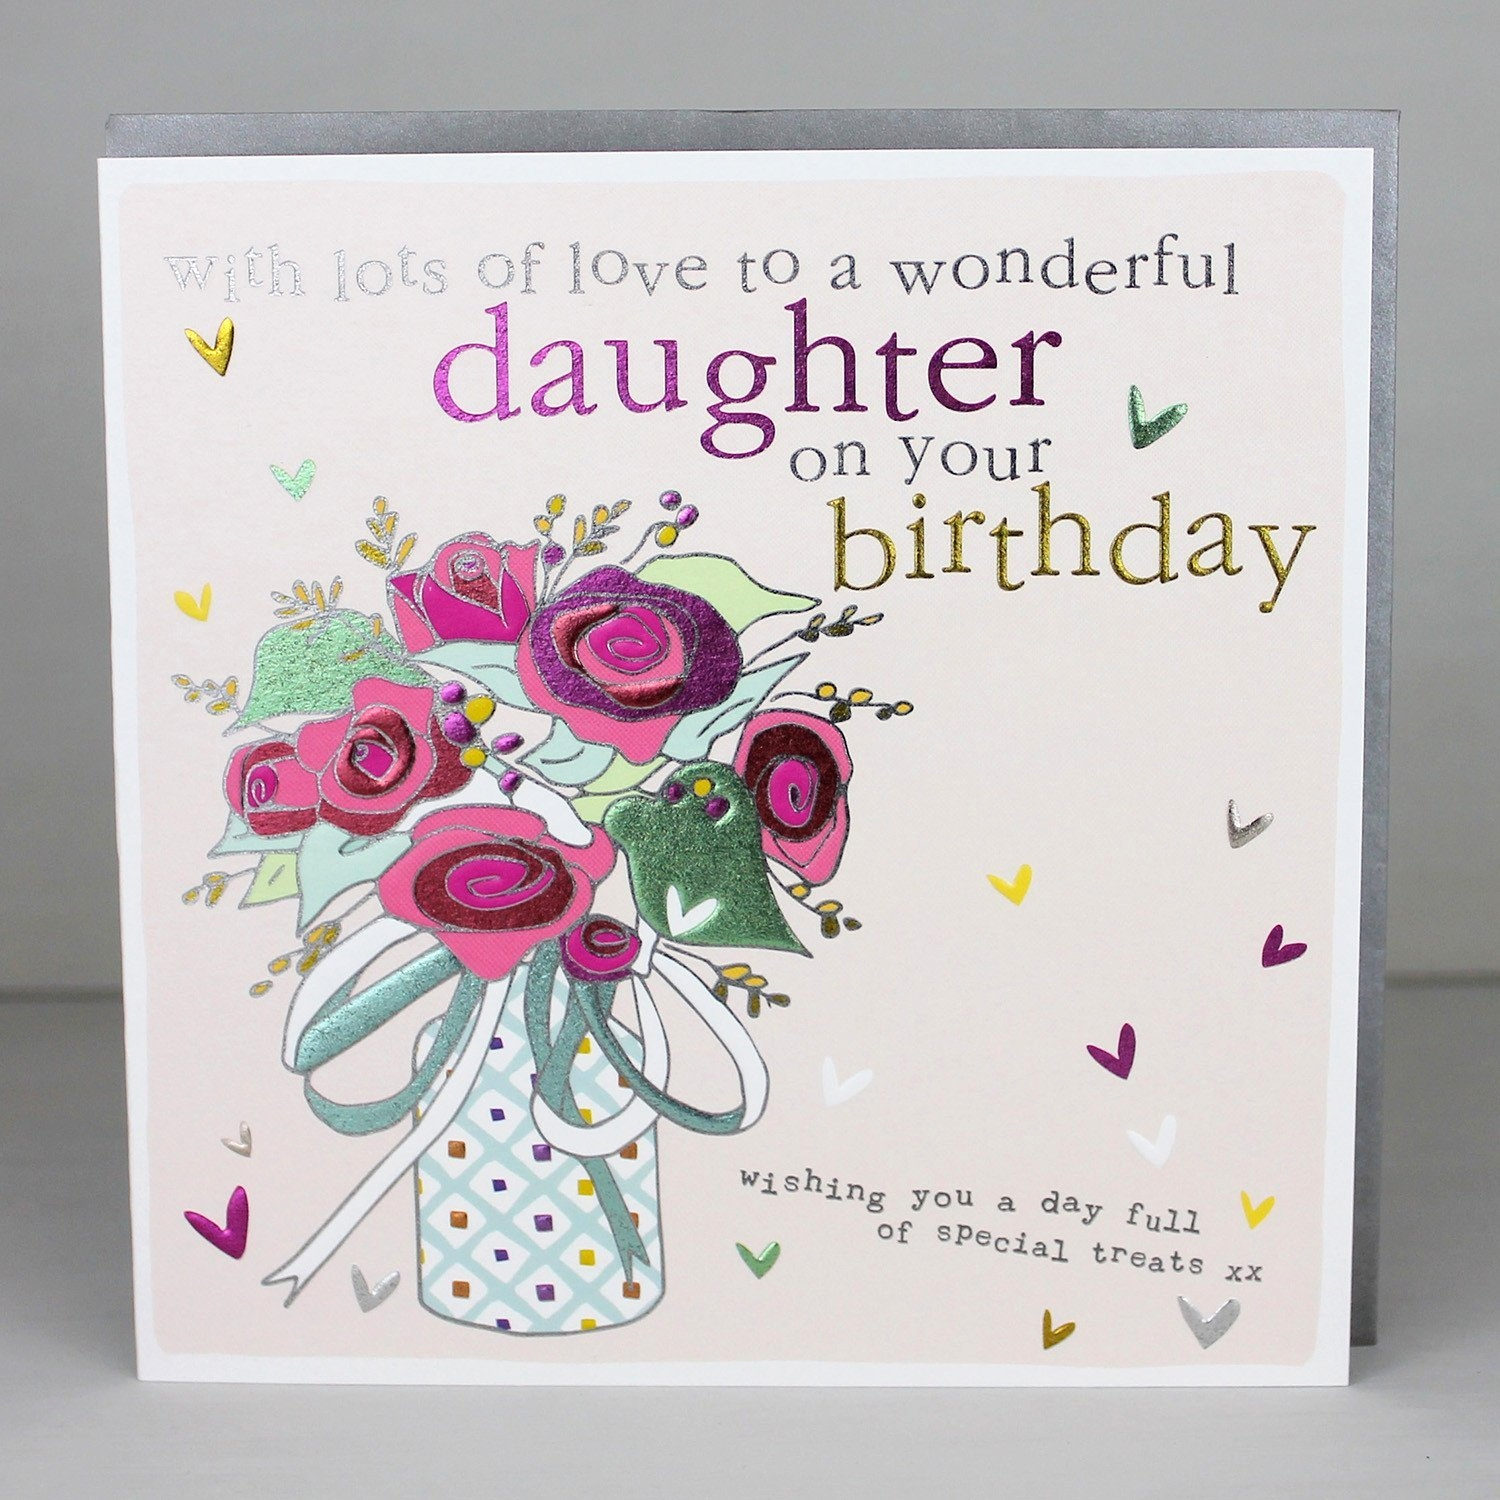 happy birthday daughter images for facebook ; daughter-birthday-cards-for-facebook-luxury-greeting-card-happy-birthday-daughter-of-daughter-birthday-cards-for-facebook